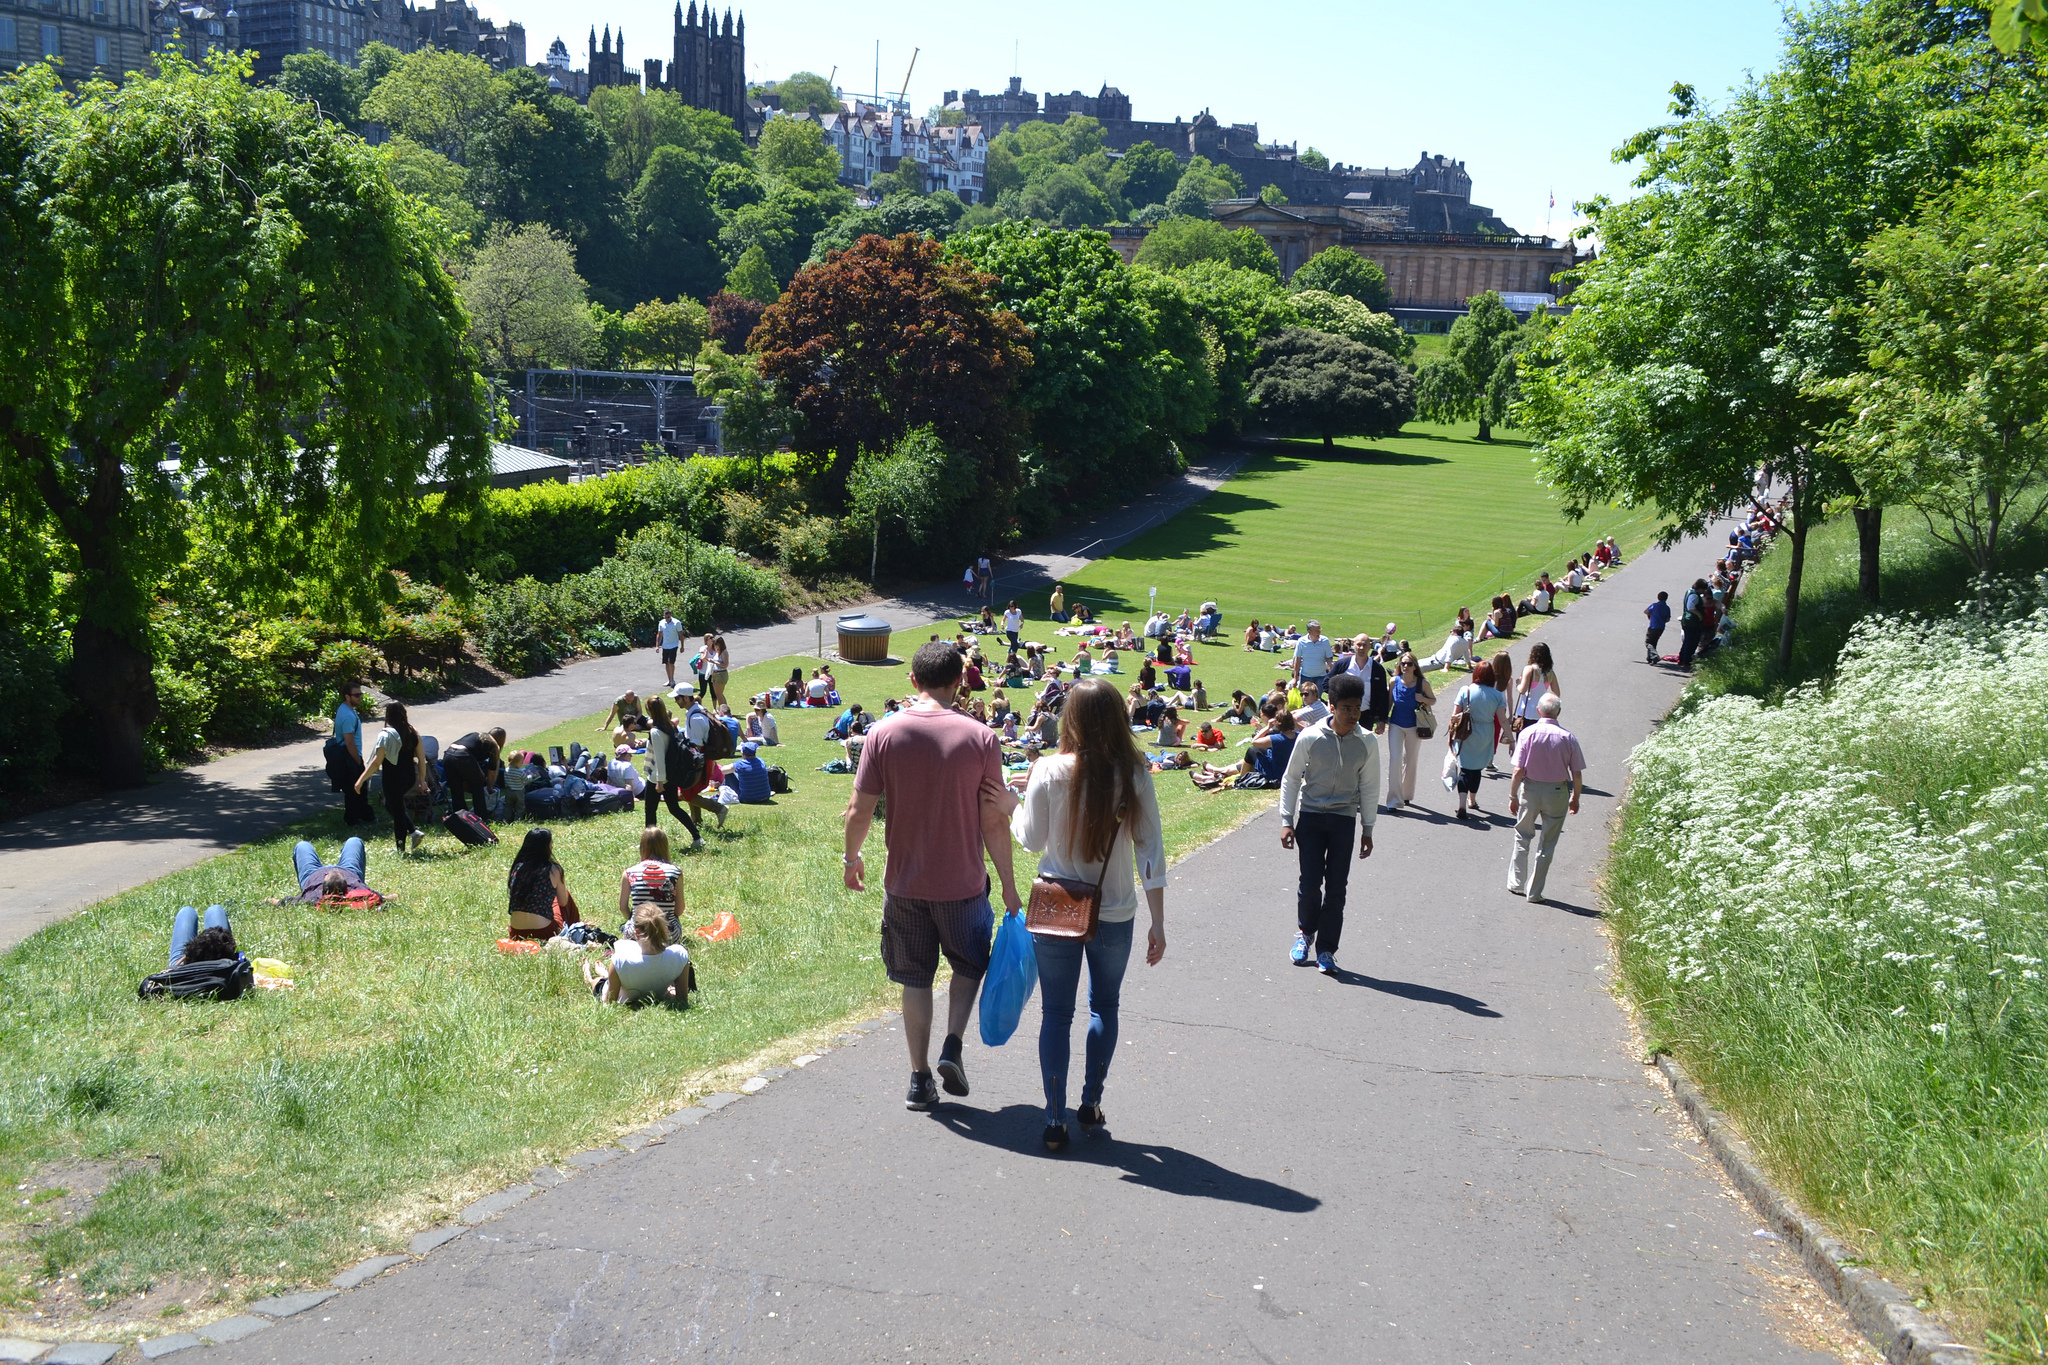 Relax in one of the city's green (or sandy) spaces